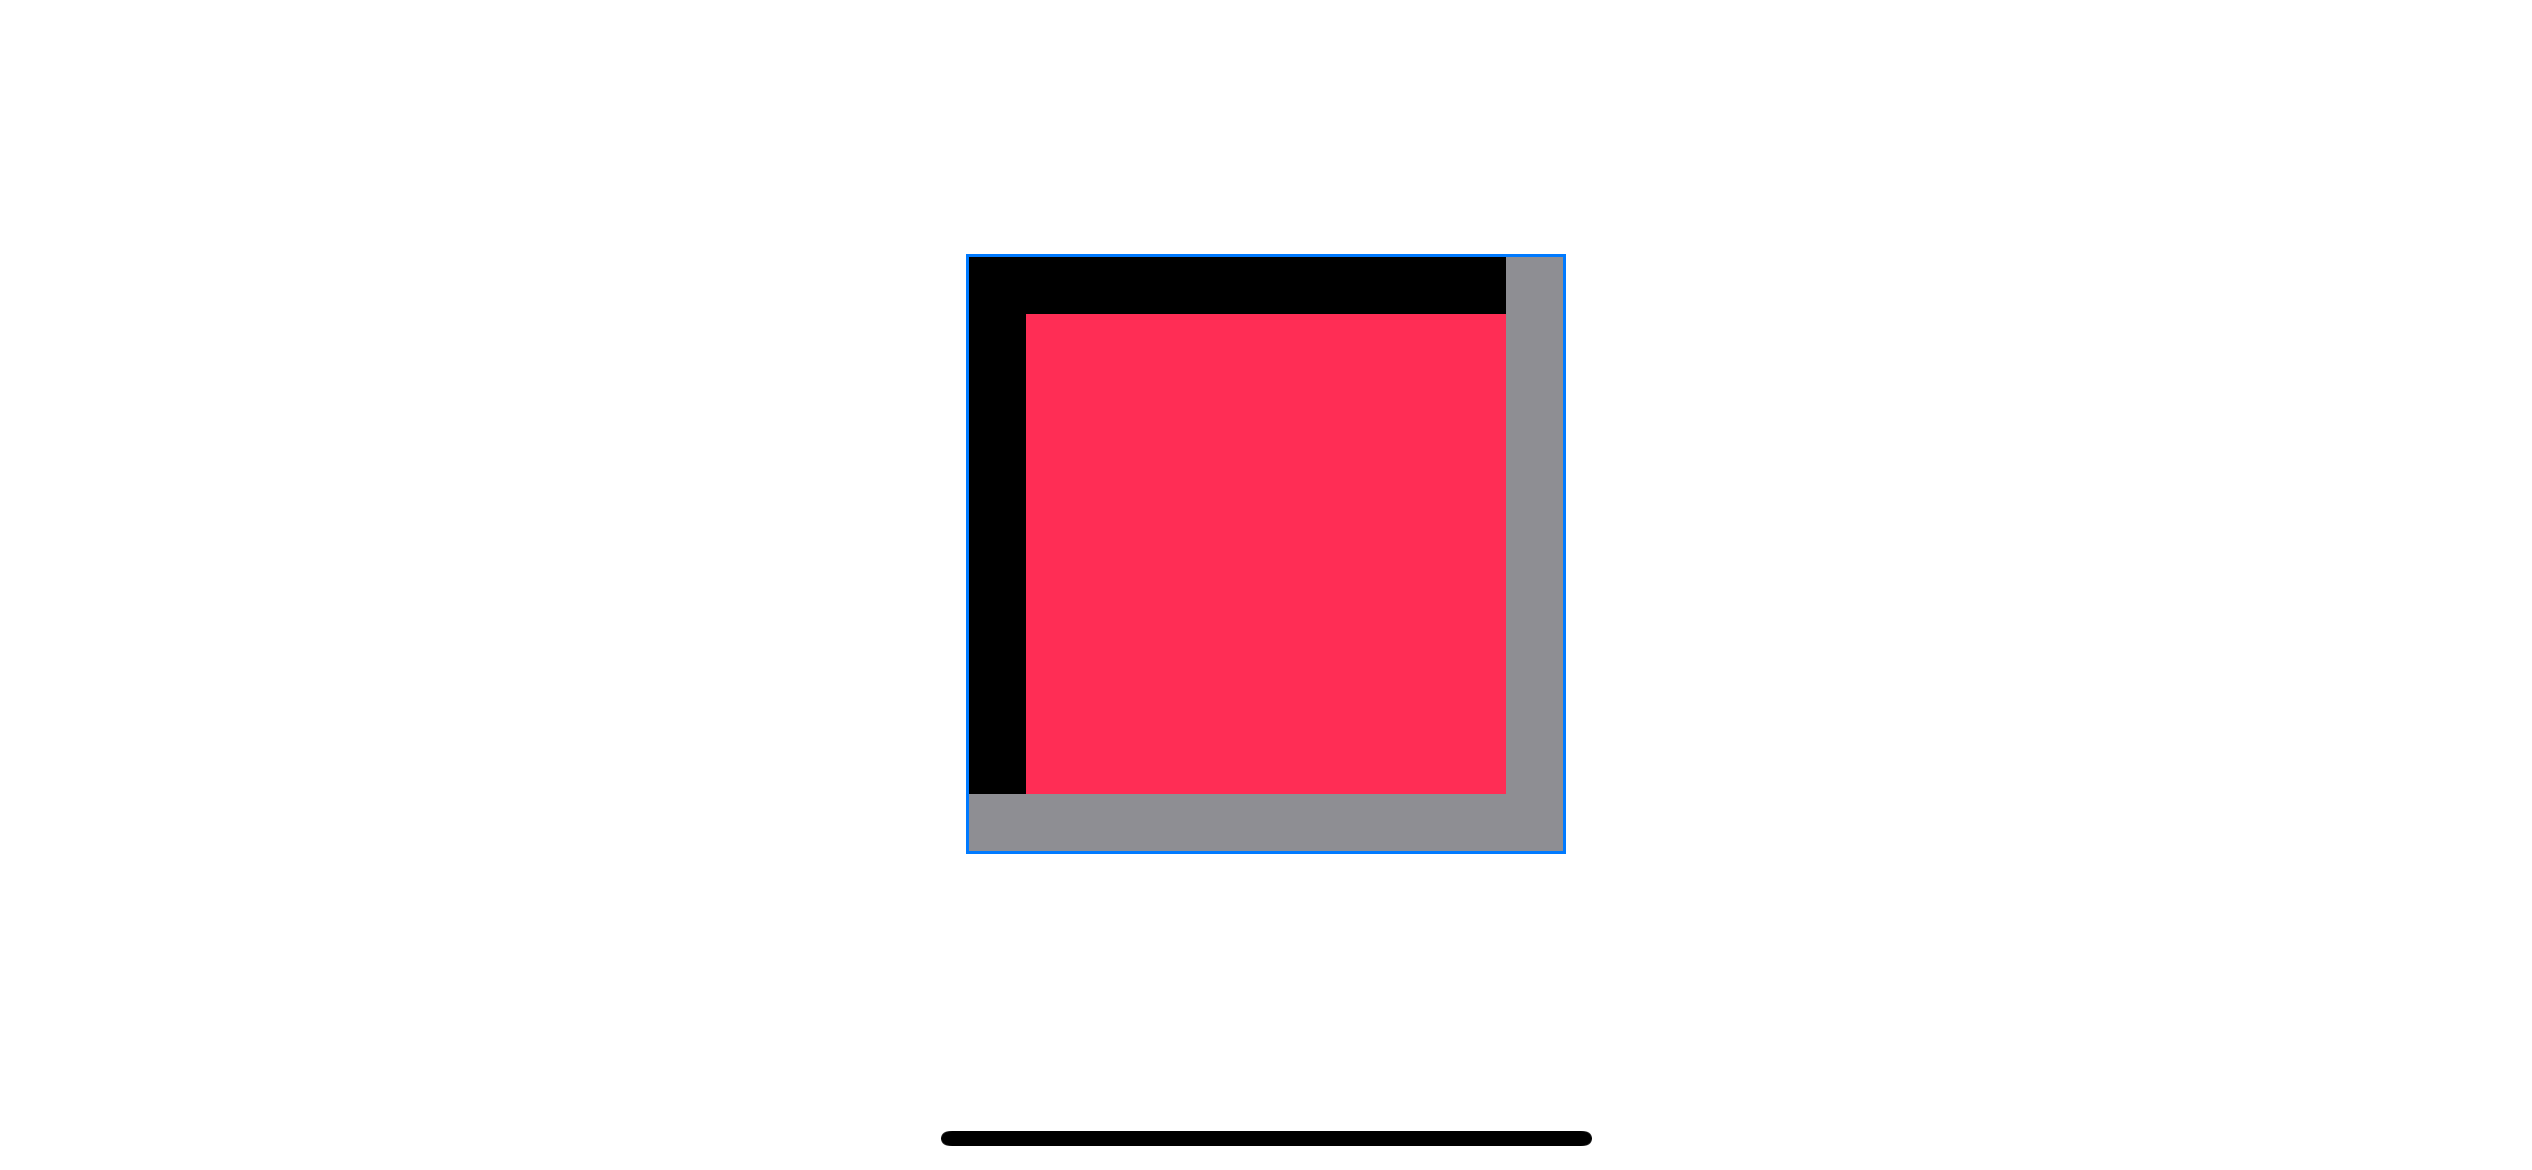 Add the second shadow at opposite edges.